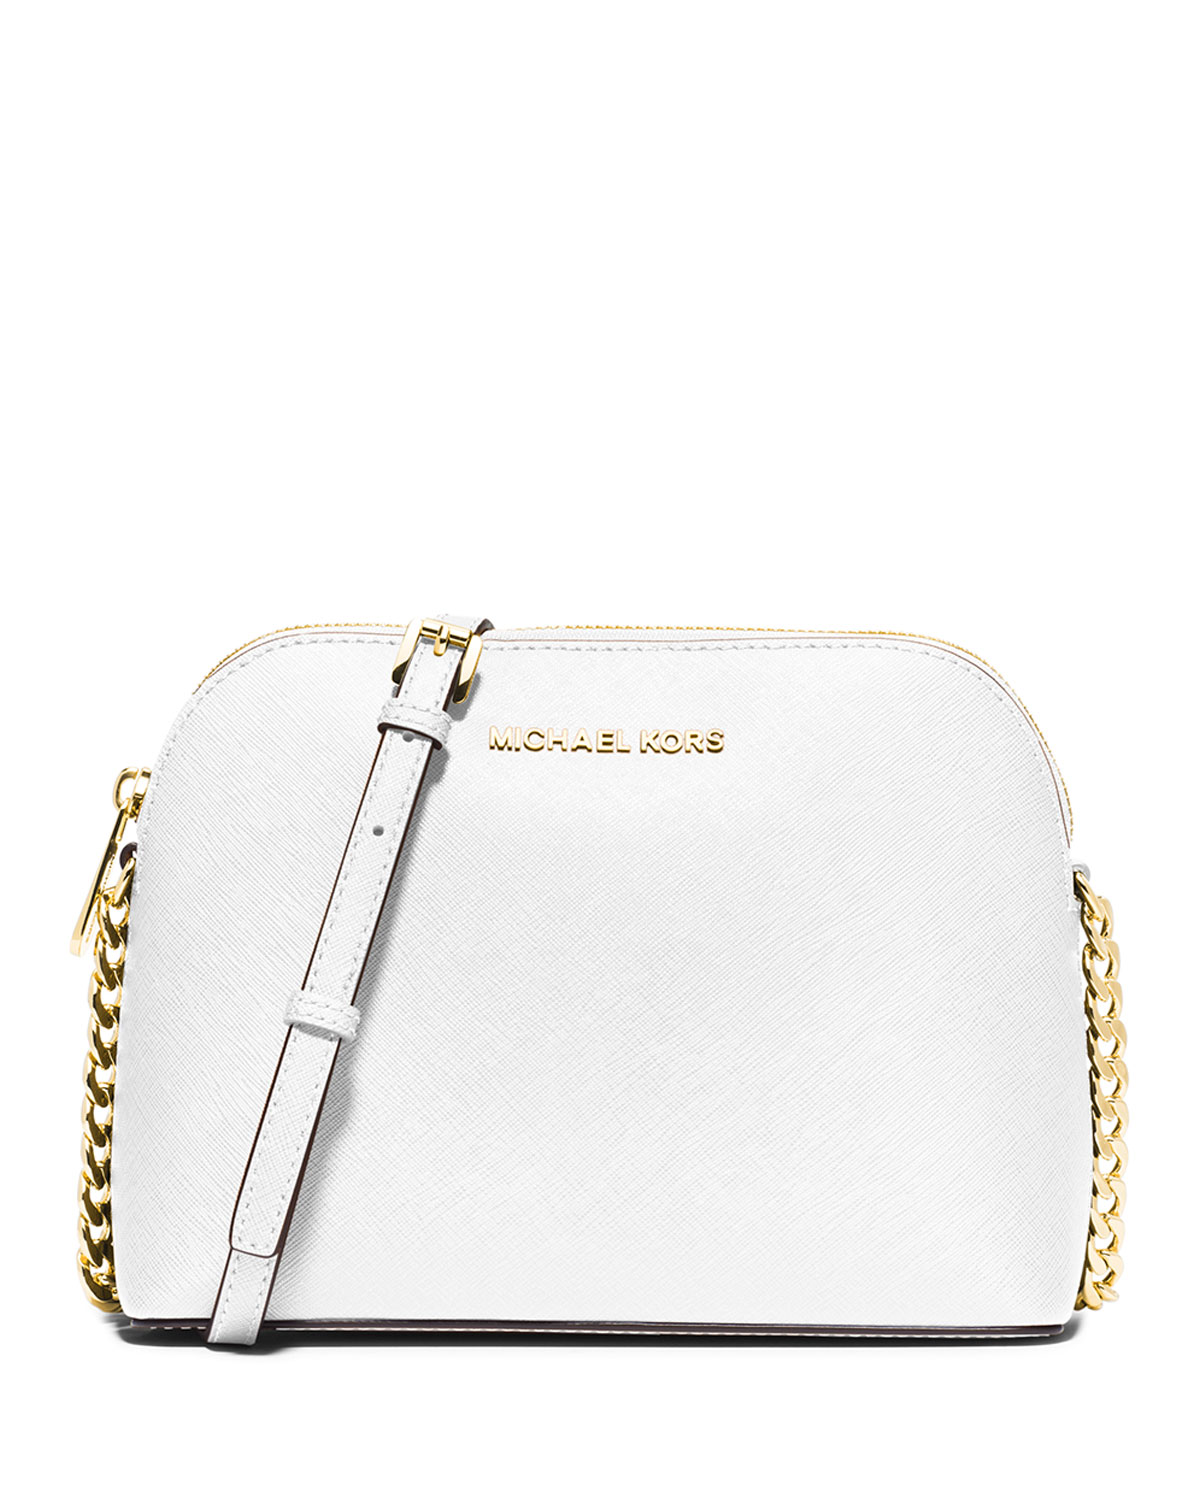 6f33dfa32467 MICHAEL Michael Kors Cindy Large Dome Crossbody Bag, Optic White ...